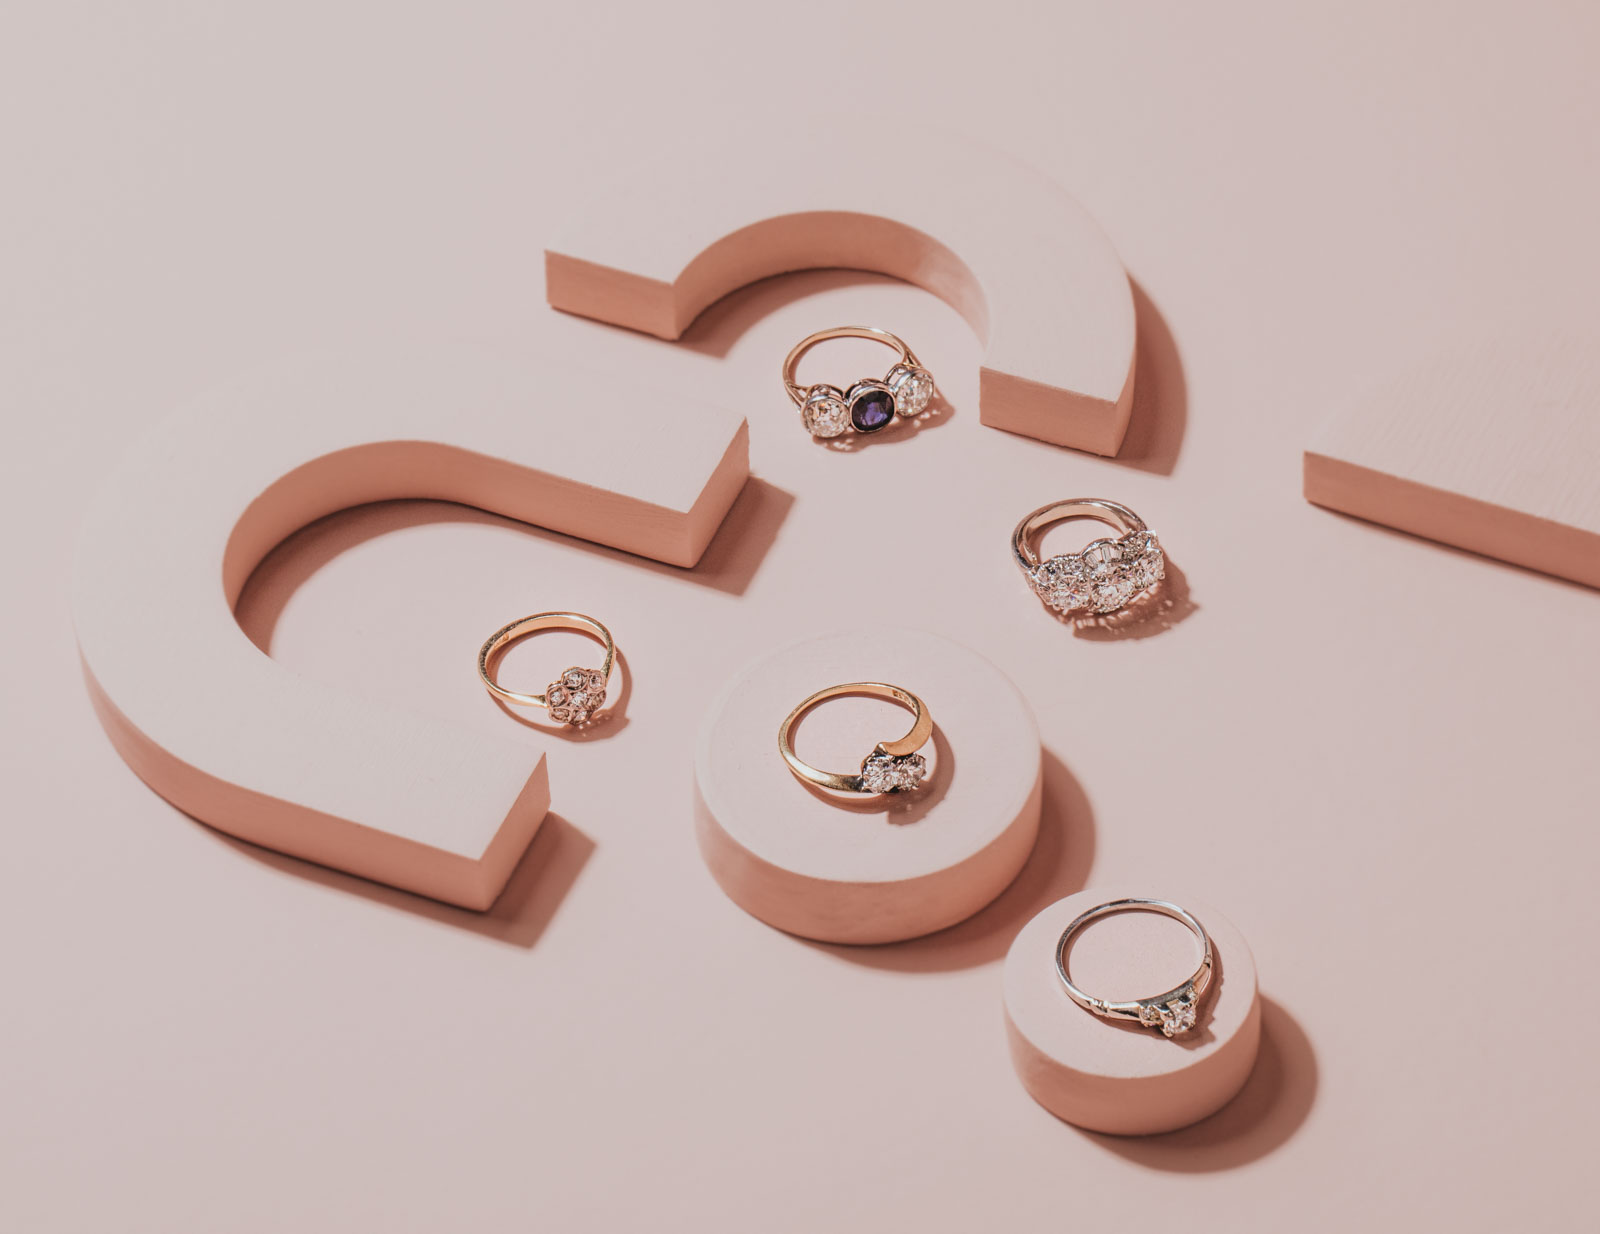 Creative layflat jewelry setup for product photography of gold and silver diamond rings for 100 Ways Jewelry. Light pink and blush blocks for unique and fun product shots